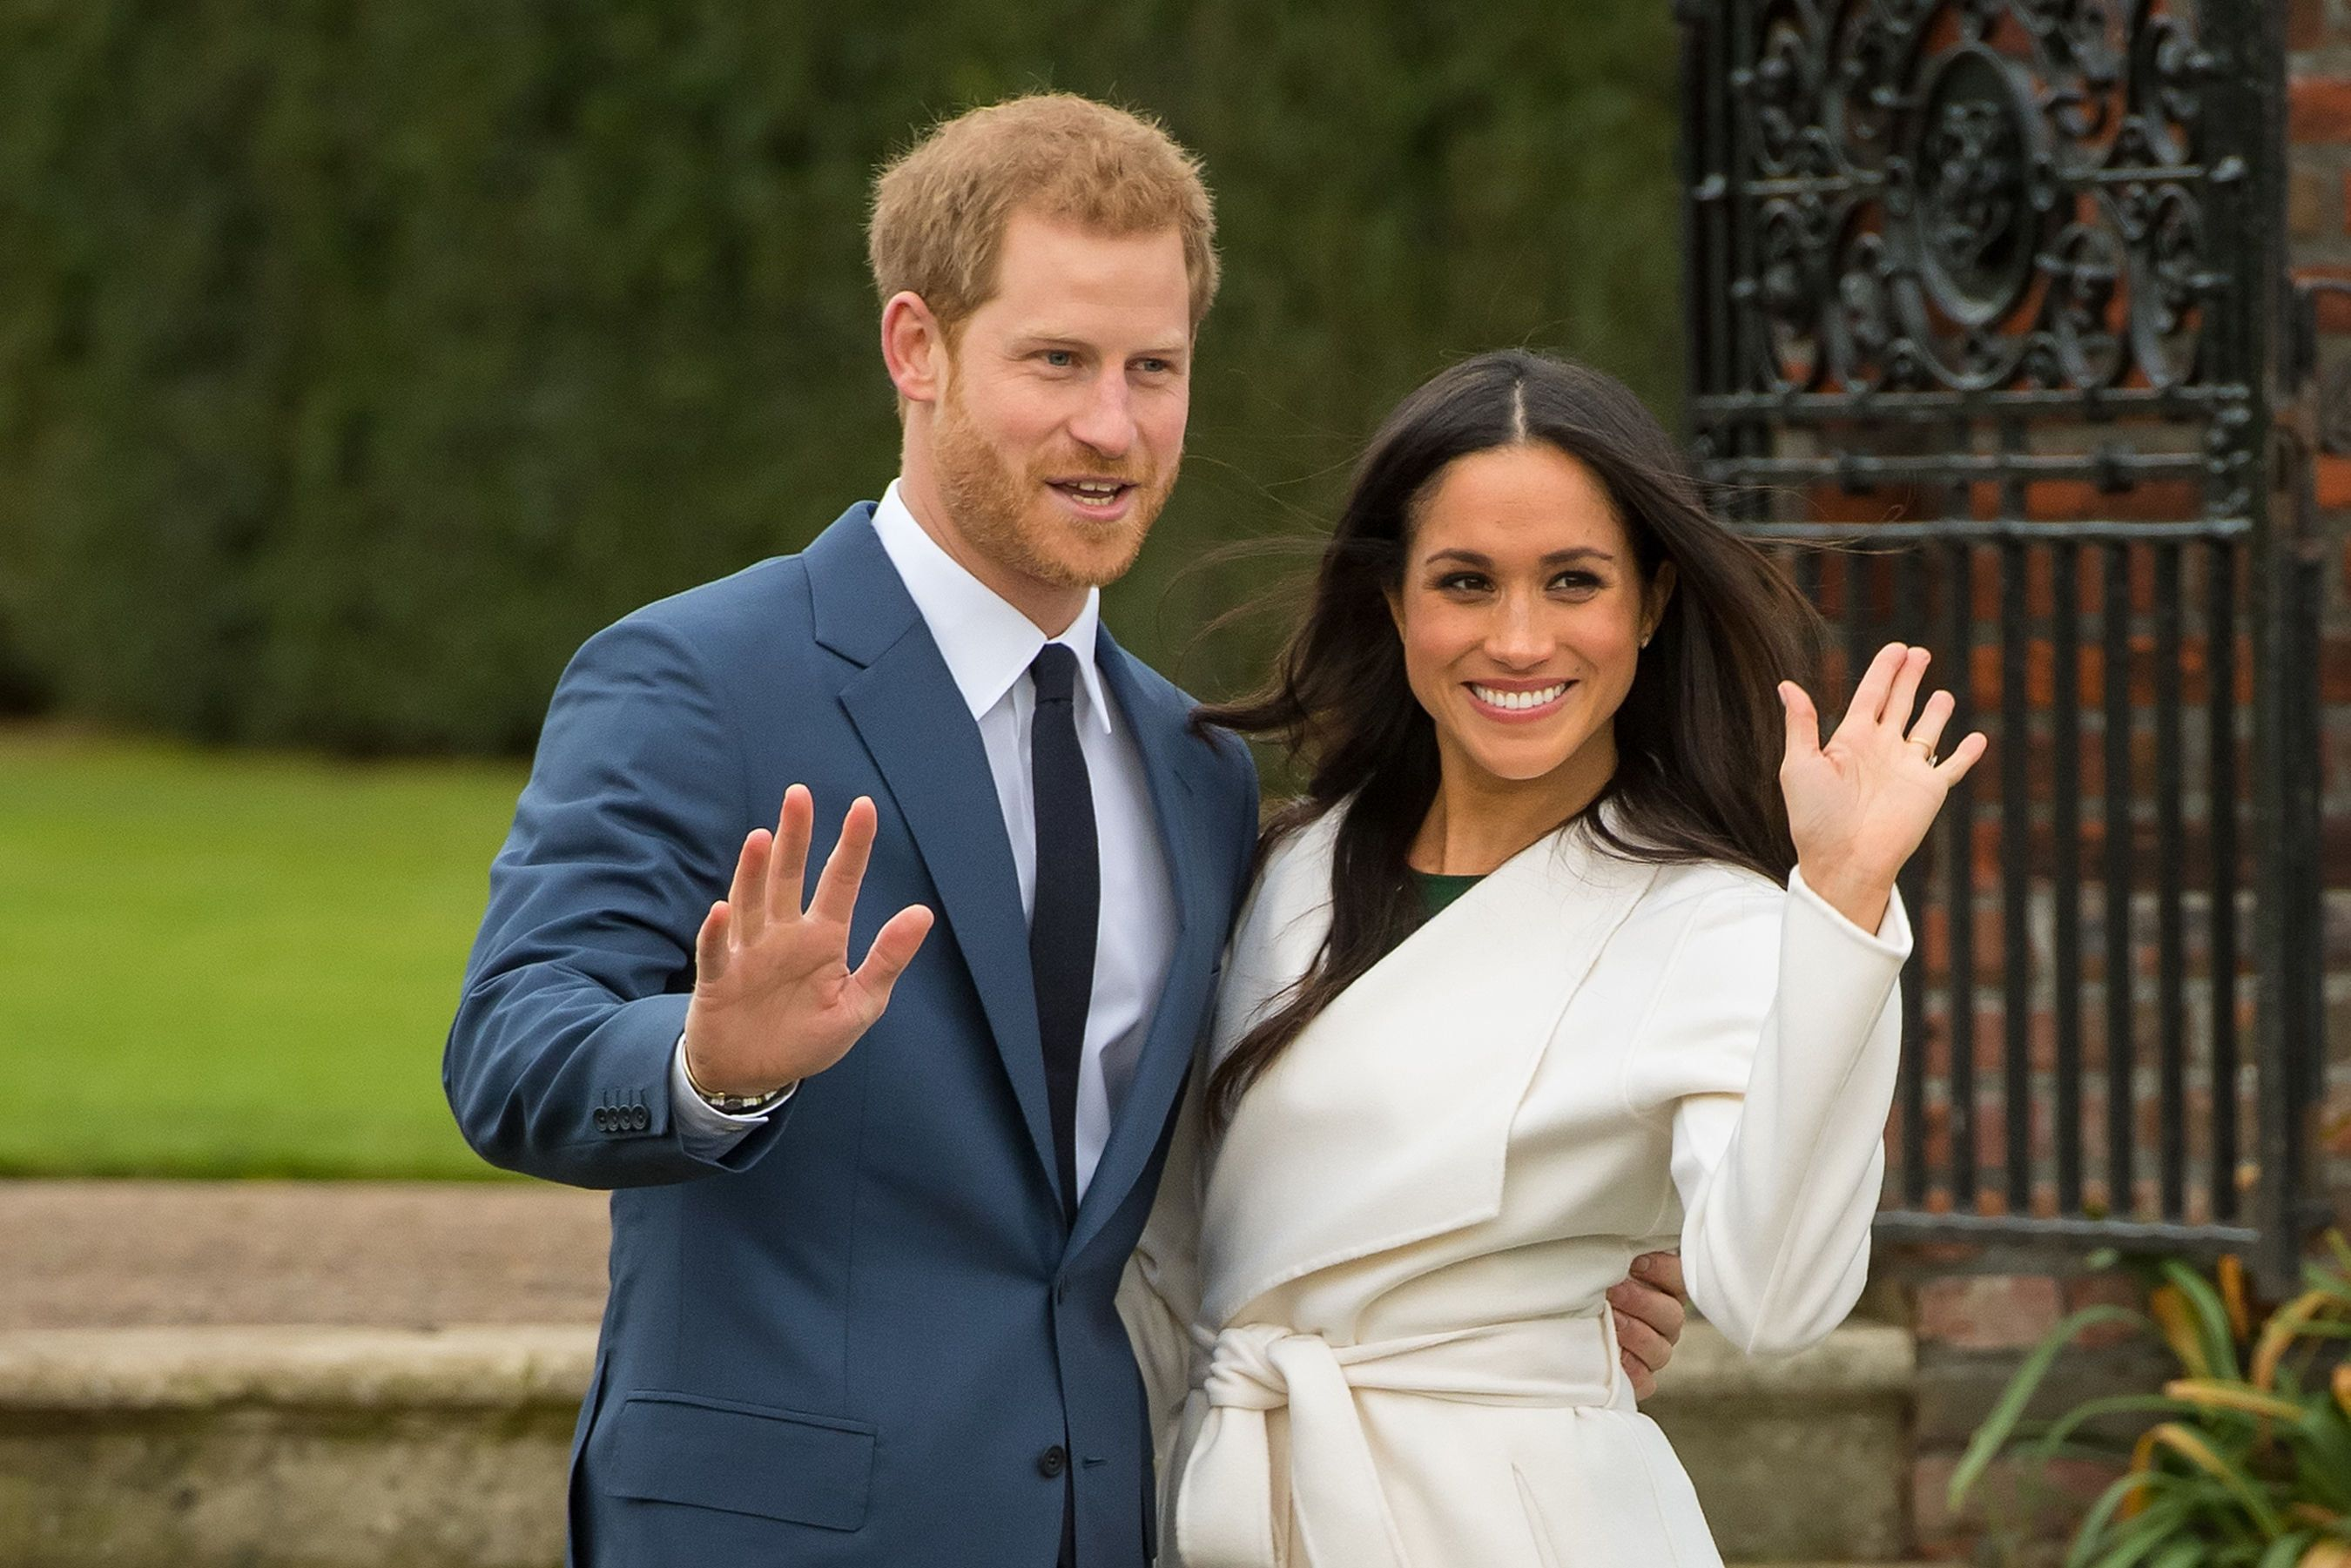 Claims about homelessness and begging ahead of Prince Harry and Meghan Markle's wedding in Windsor have...